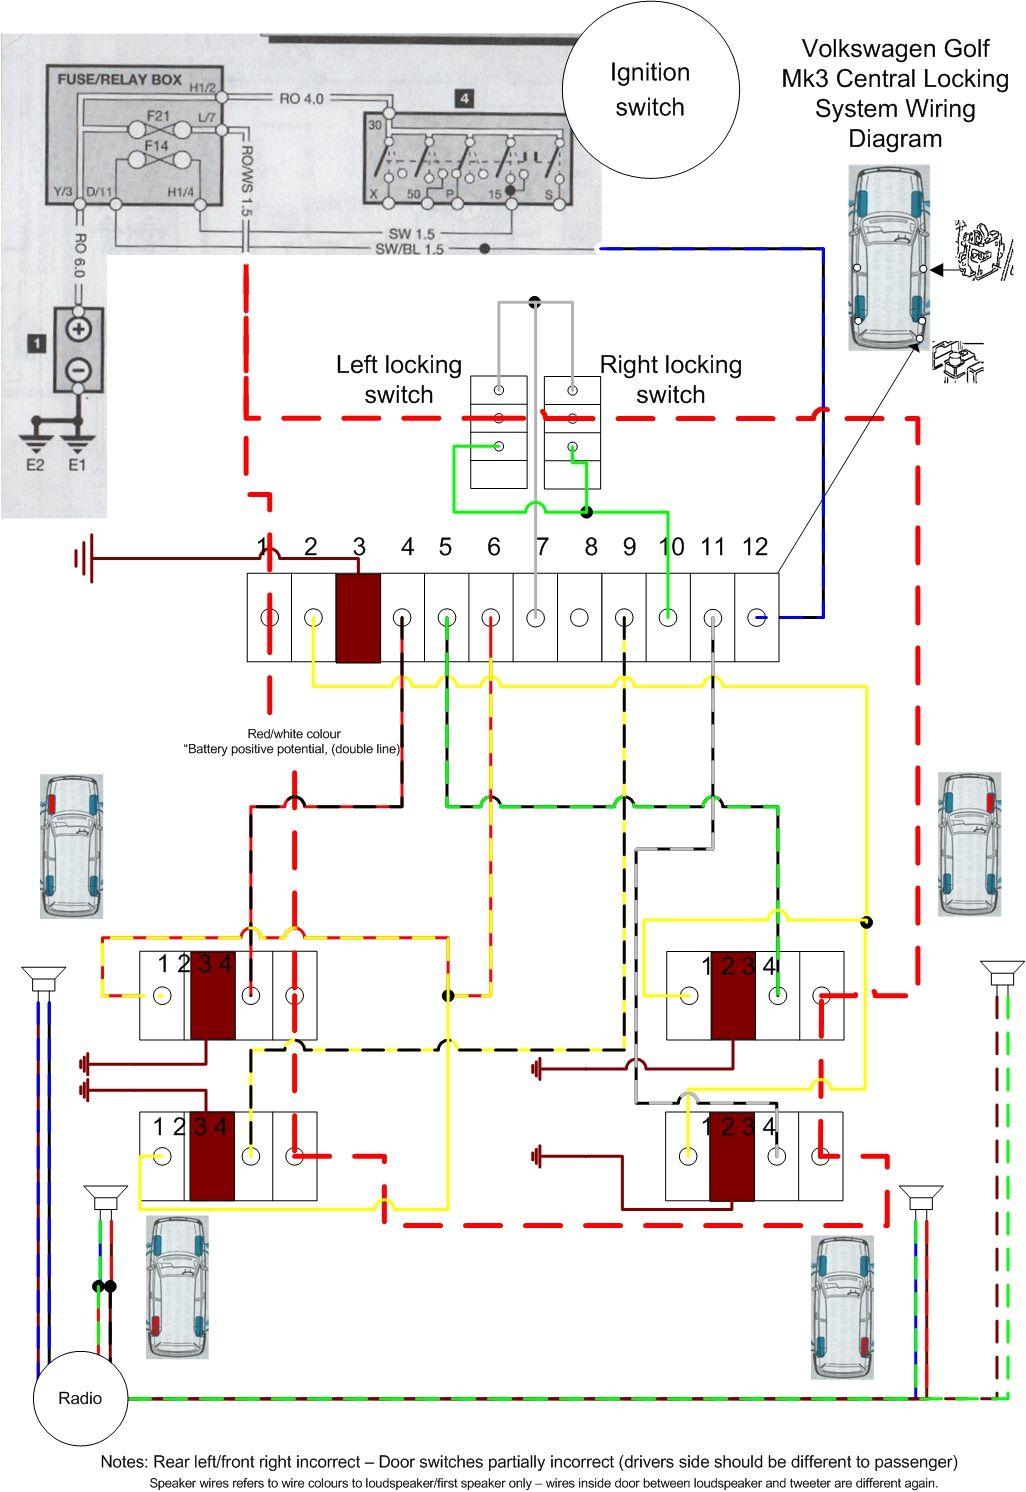 vw ignition switch wiring diagram another wiring diagram vw ignition switch wiring diagram vw ignition wiring diagram [ 1026 x 1492 Pixel ]